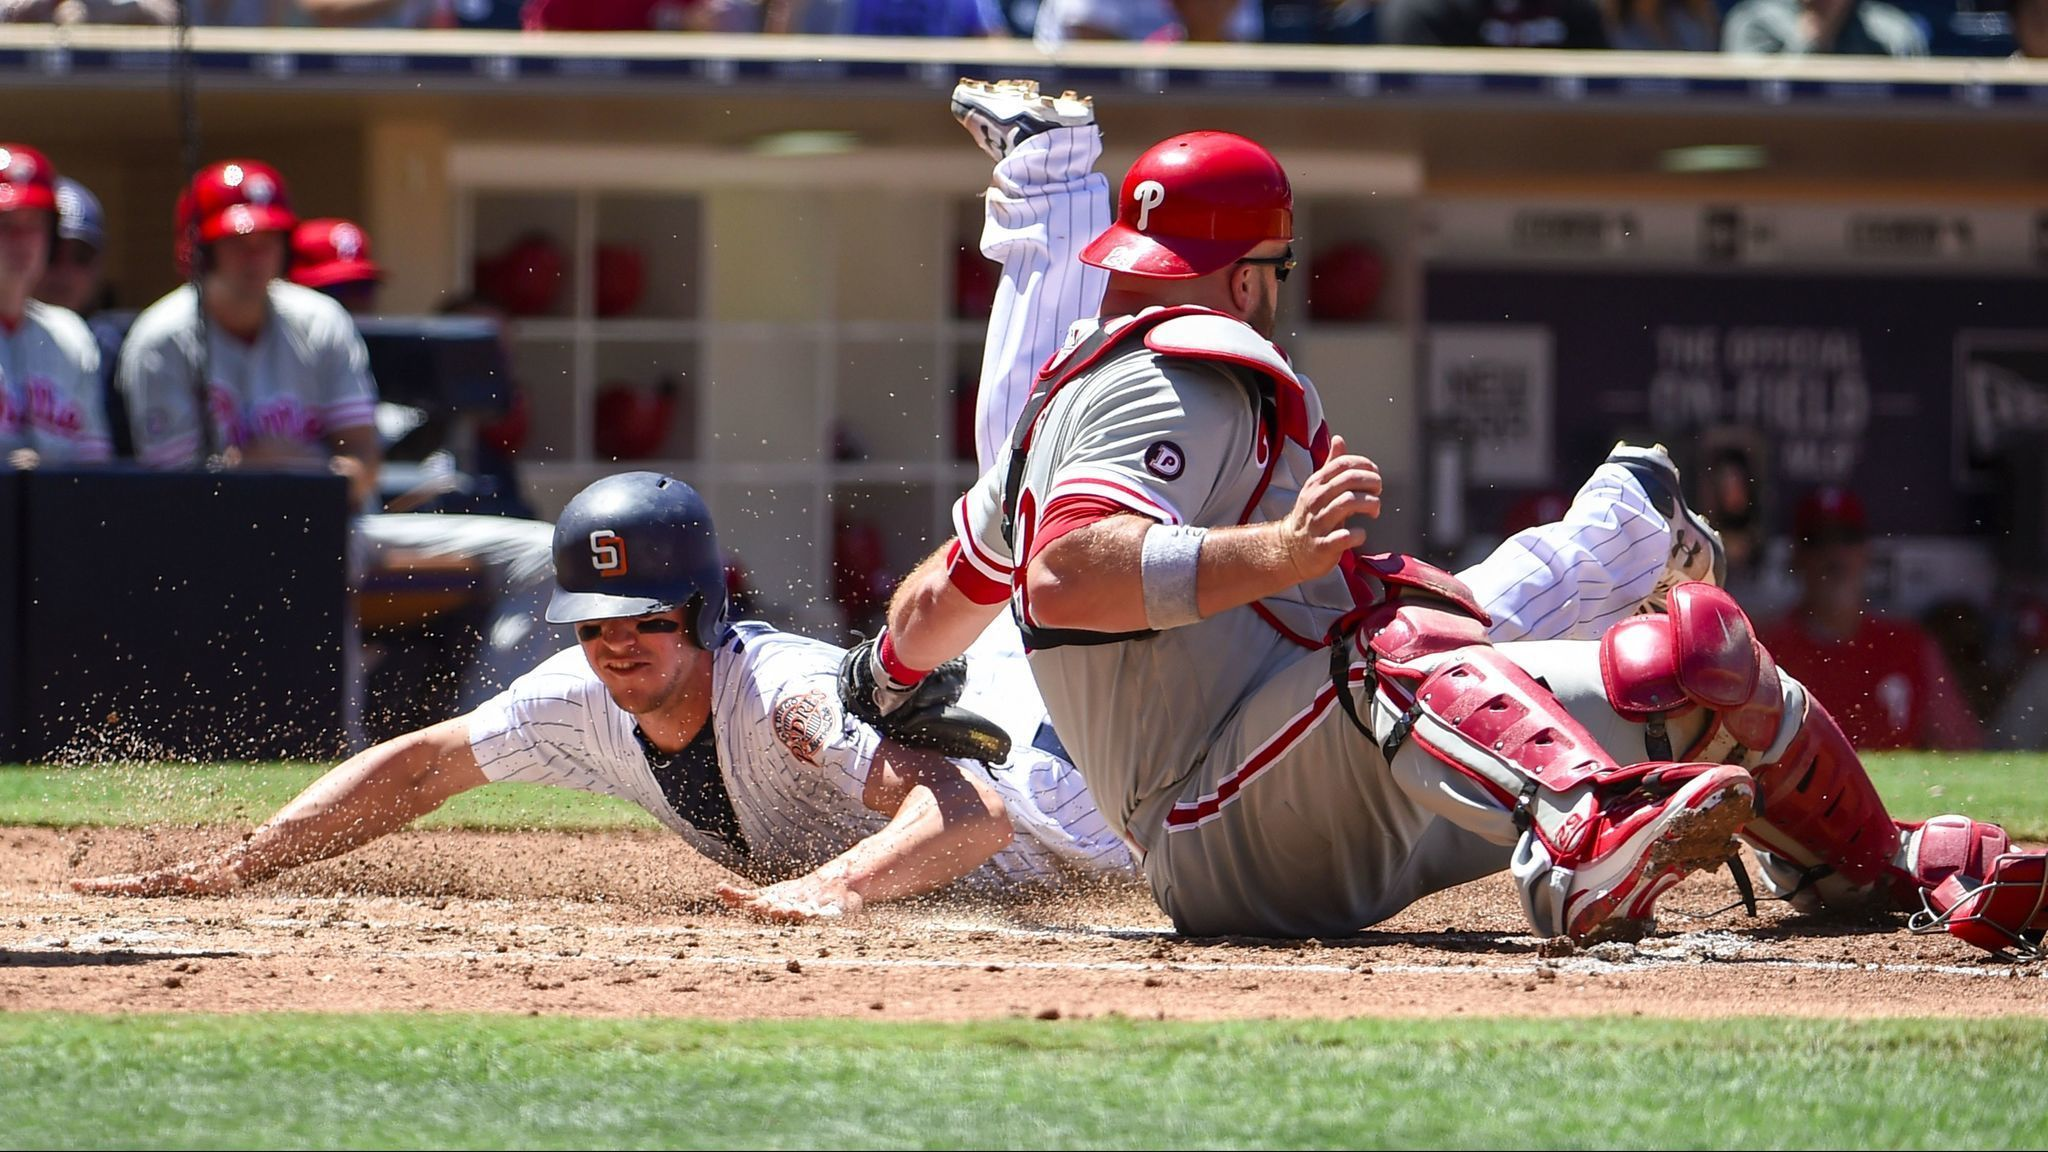 Sd-sp-myers-three-steals-padres-sweep-phillies-20170816